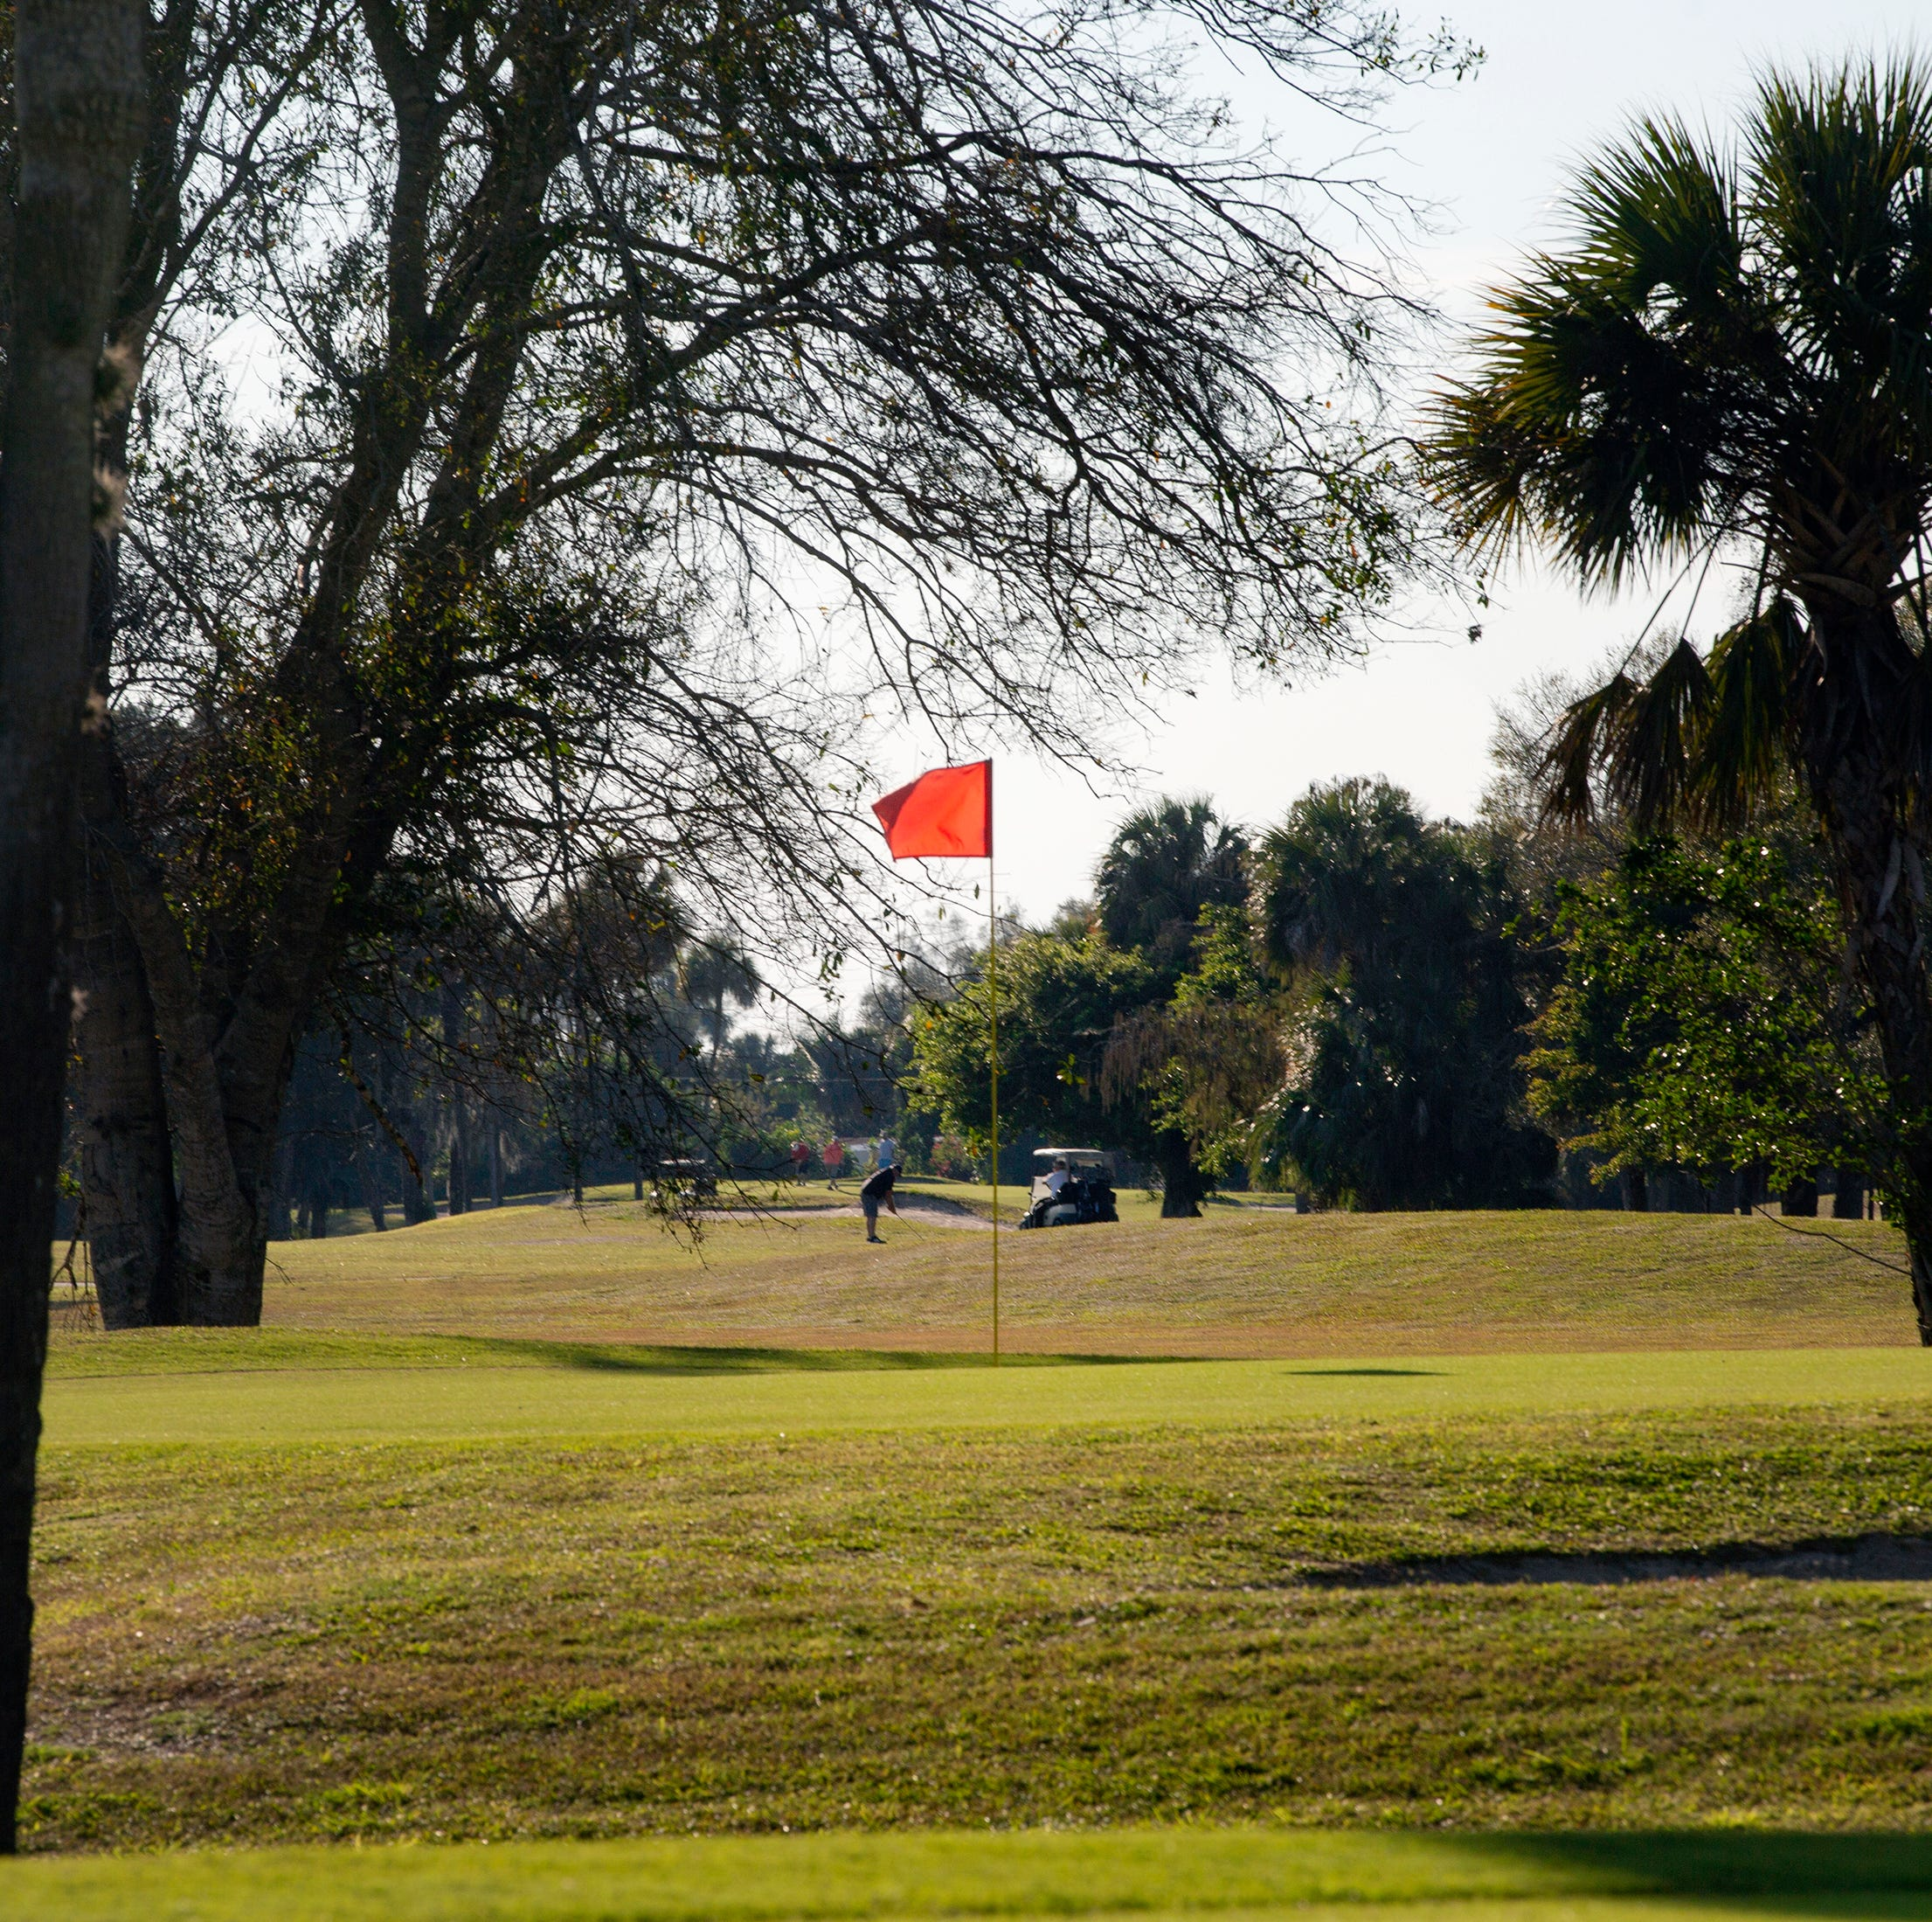 Golf course purchase proposal moves forward with Collier Commission vote